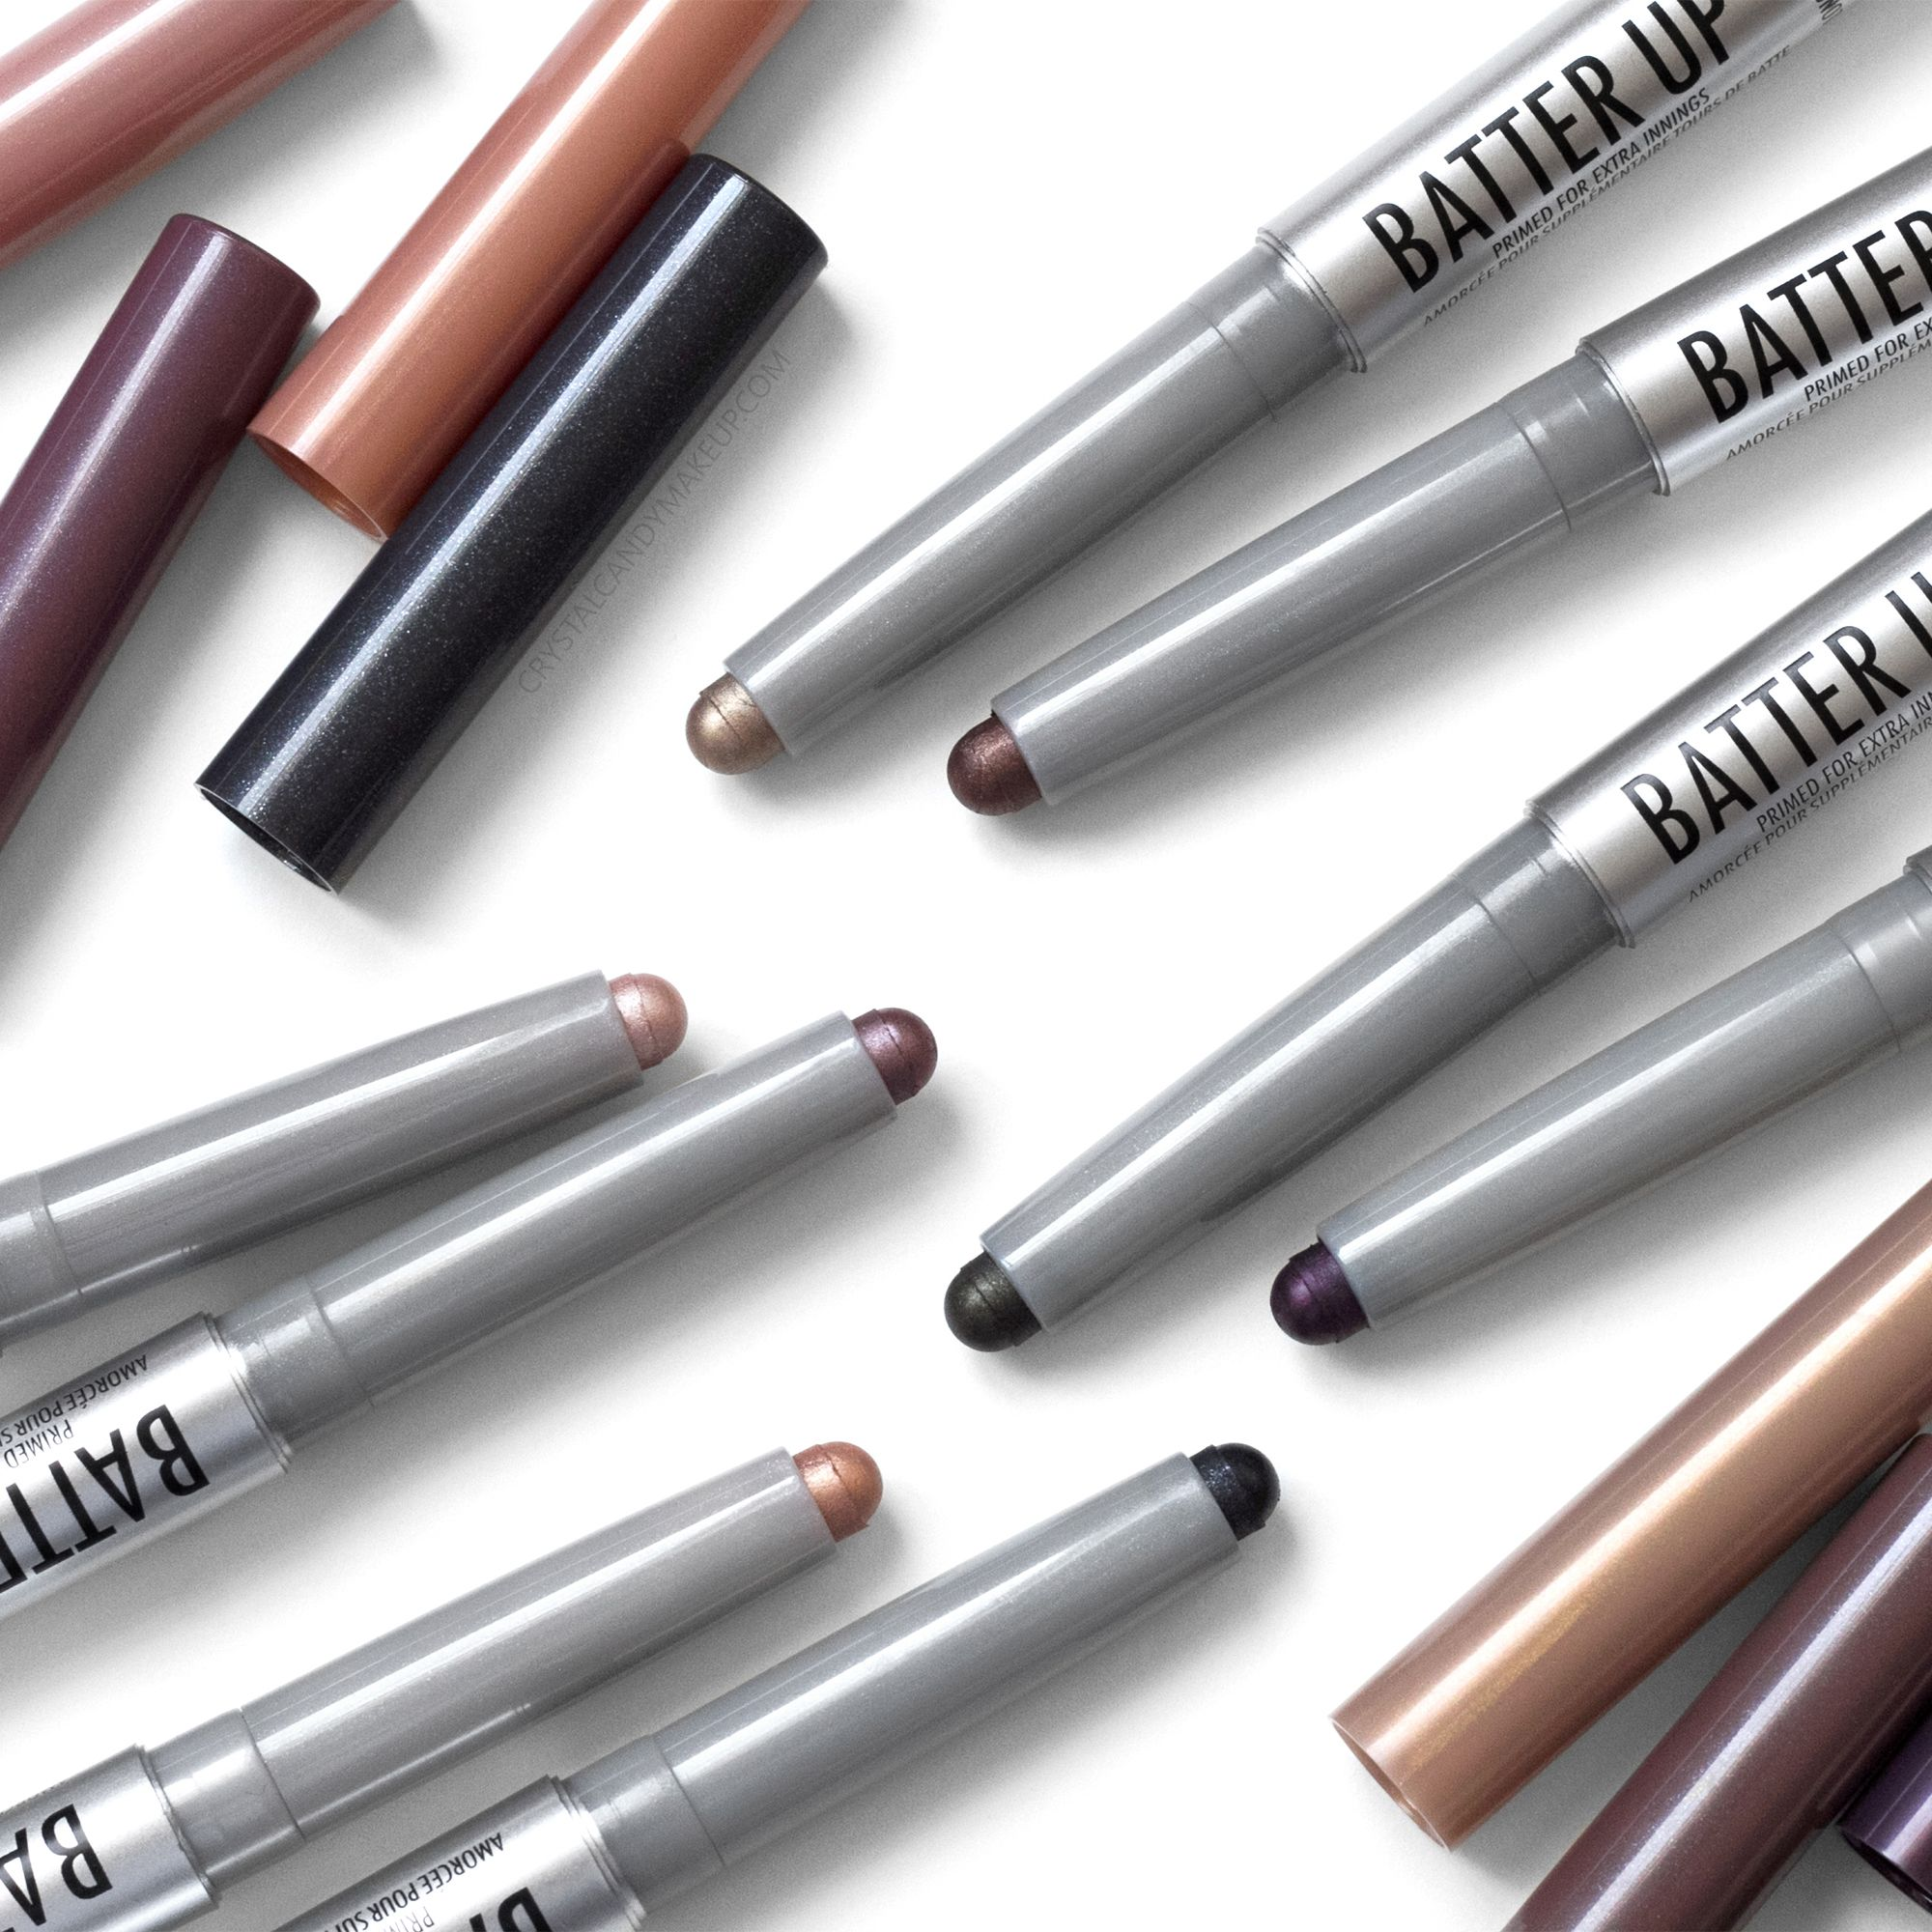 TheBalm Batter Up Eyeshadow Sticks, review and swatches